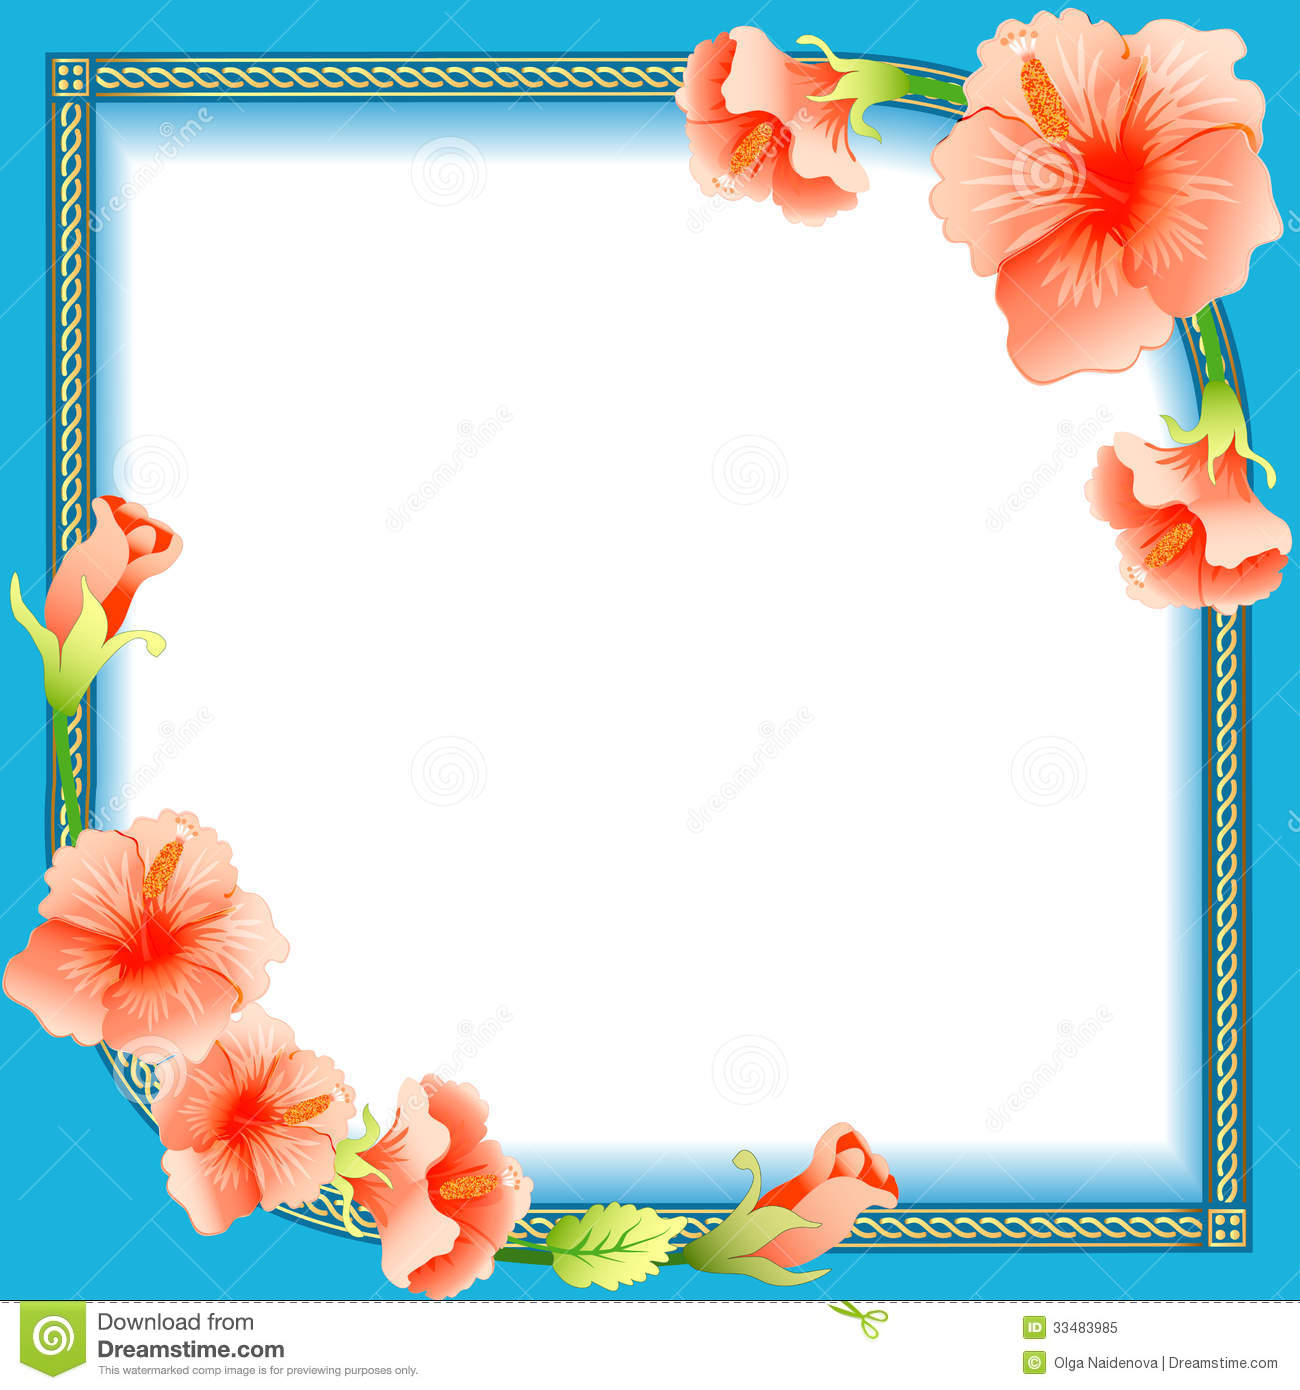 Background Frame With Ornament And Flowers Stock Vector ...